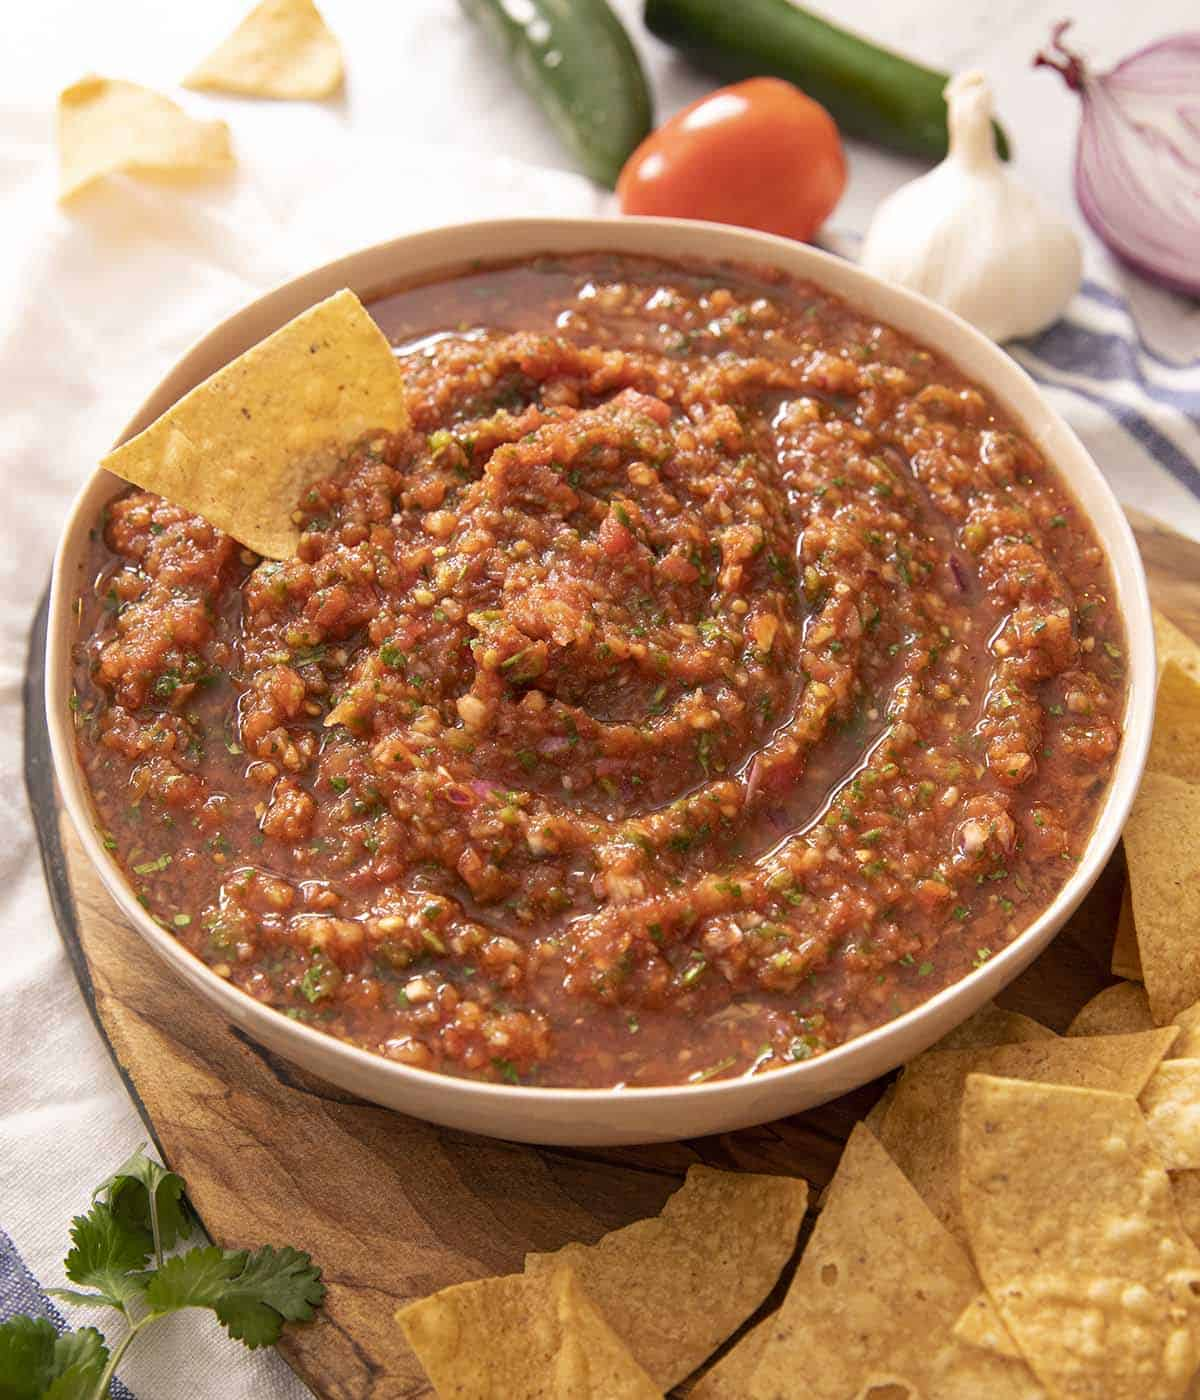 Salsa in a bowl with a tortilla chip at the side